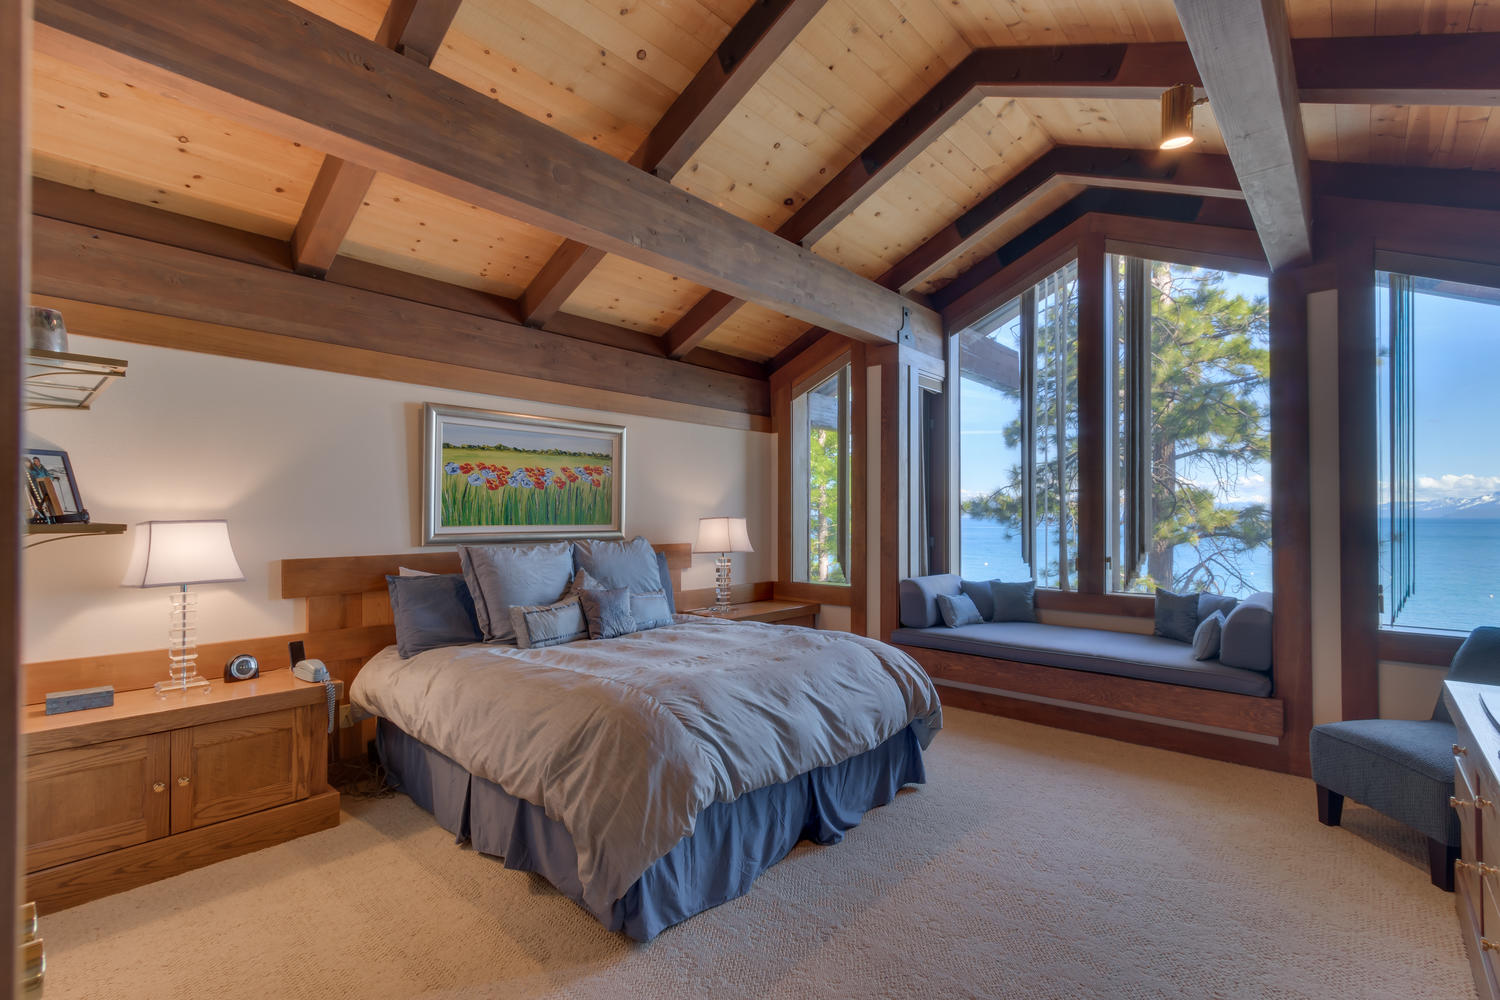 Master Bedroom at Whispering Pines Tahoe vacation rental